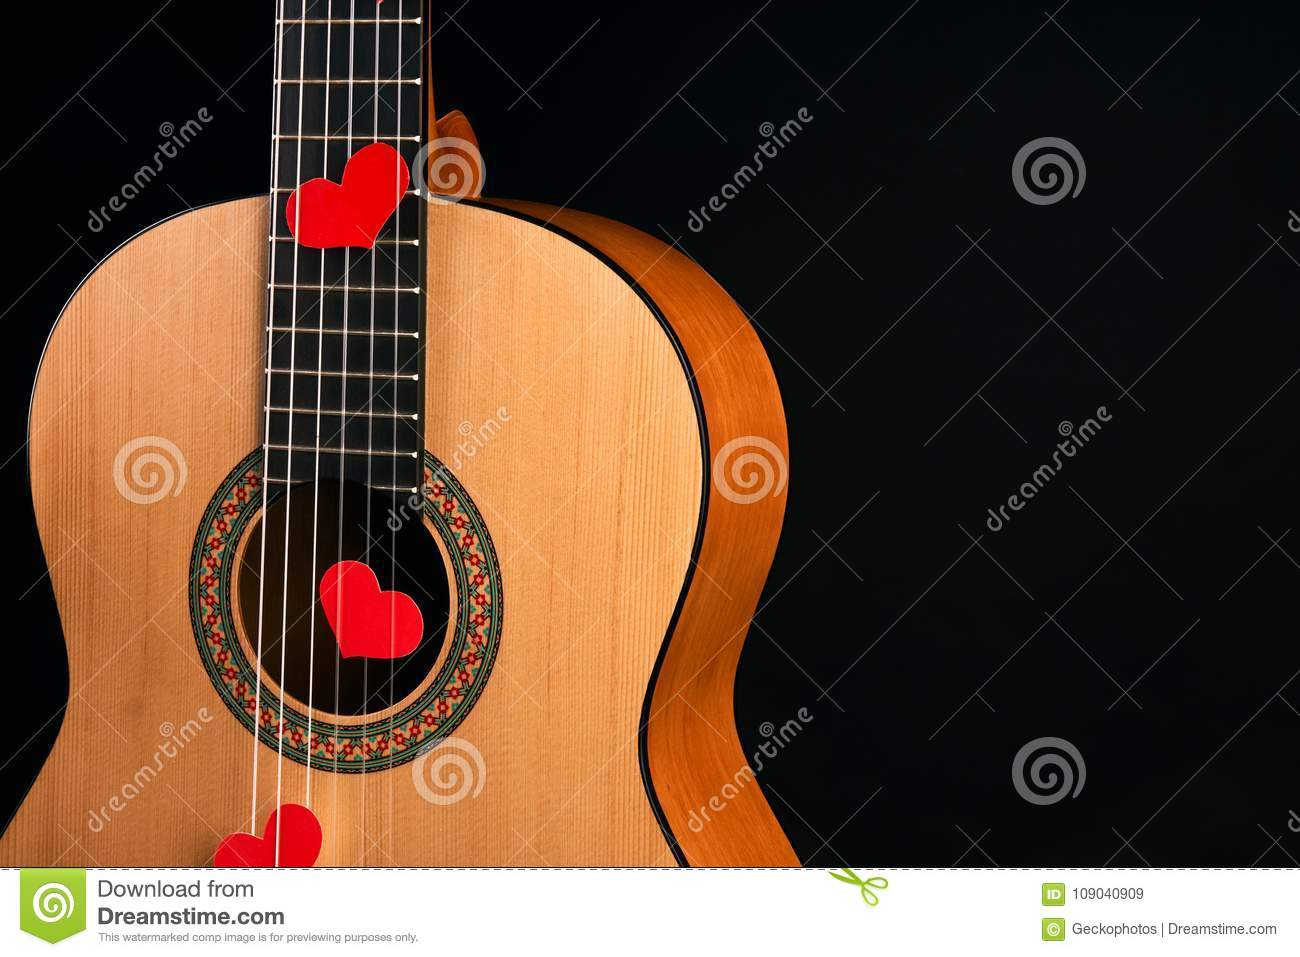 Red hearts on the strings of a guitar